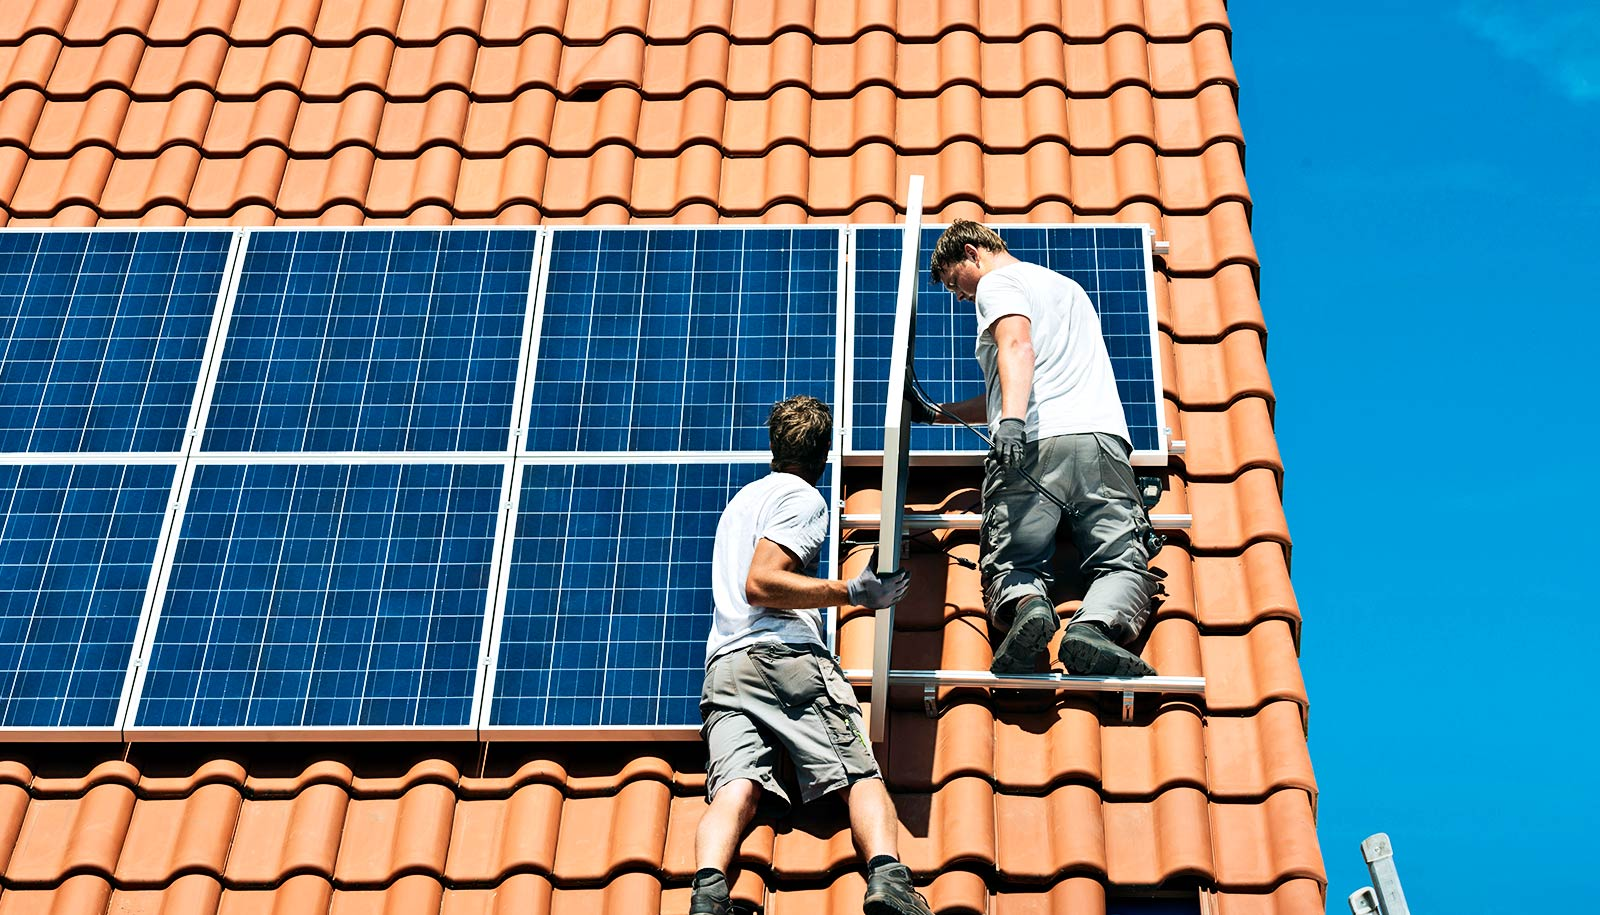 Home batteries can sap your solar system's value